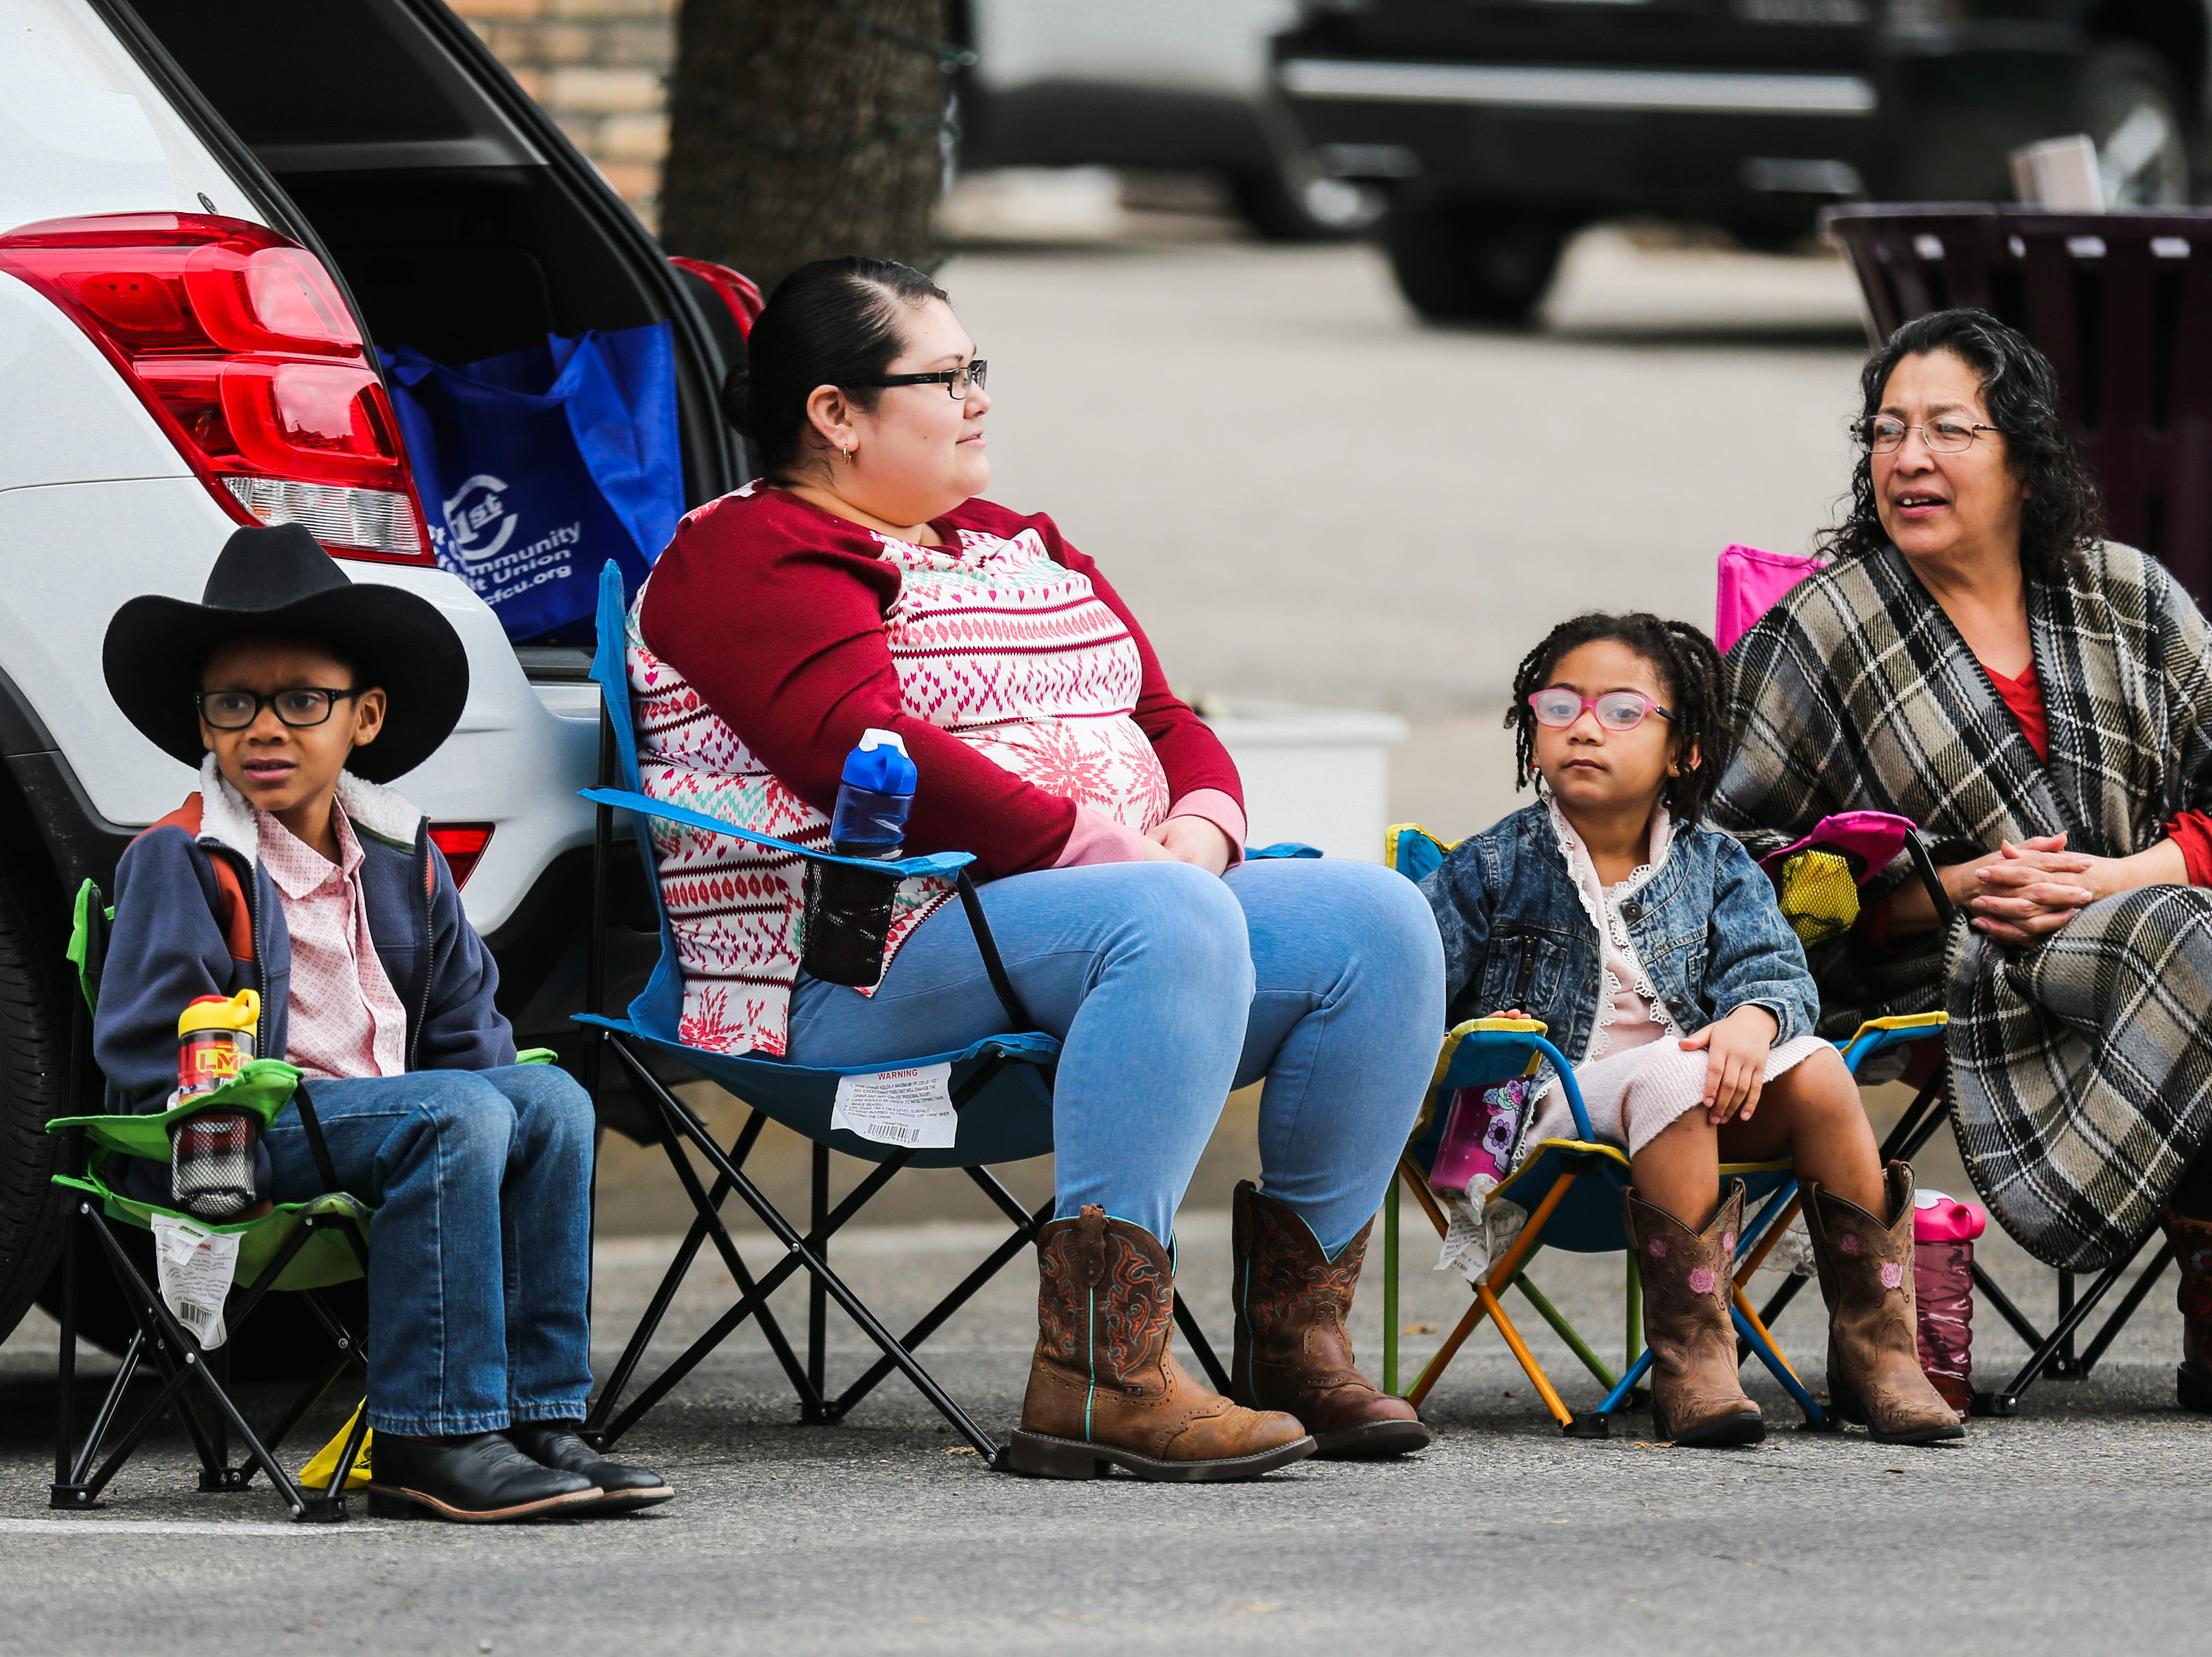 Spectators wait for paraders to make their way down the street during the San Angelo Stock Show and Rodeo Parade to start Saturday, Feb. 2, 2019, in downtown San Angelo.